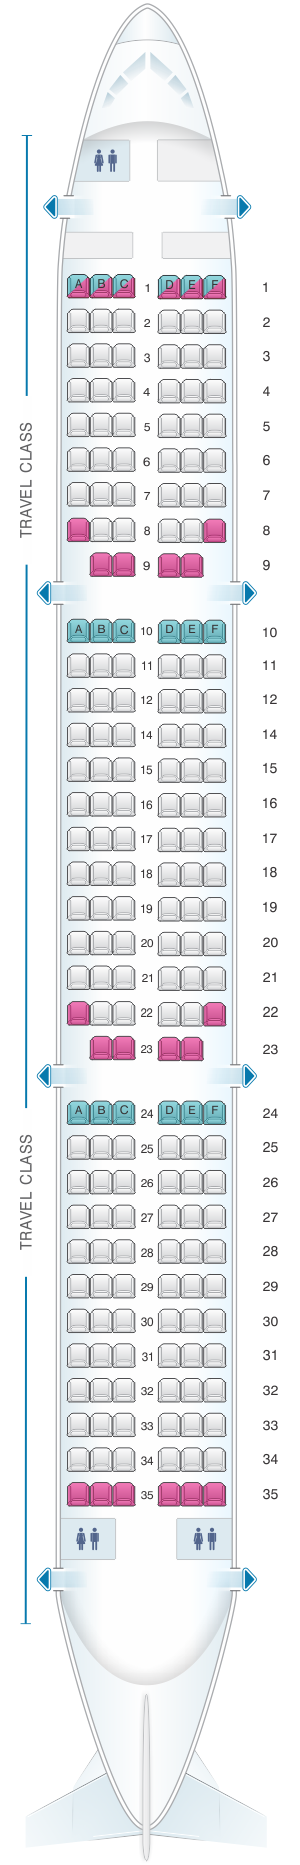 Seat map for Asiana Airlines Airbus A321 100